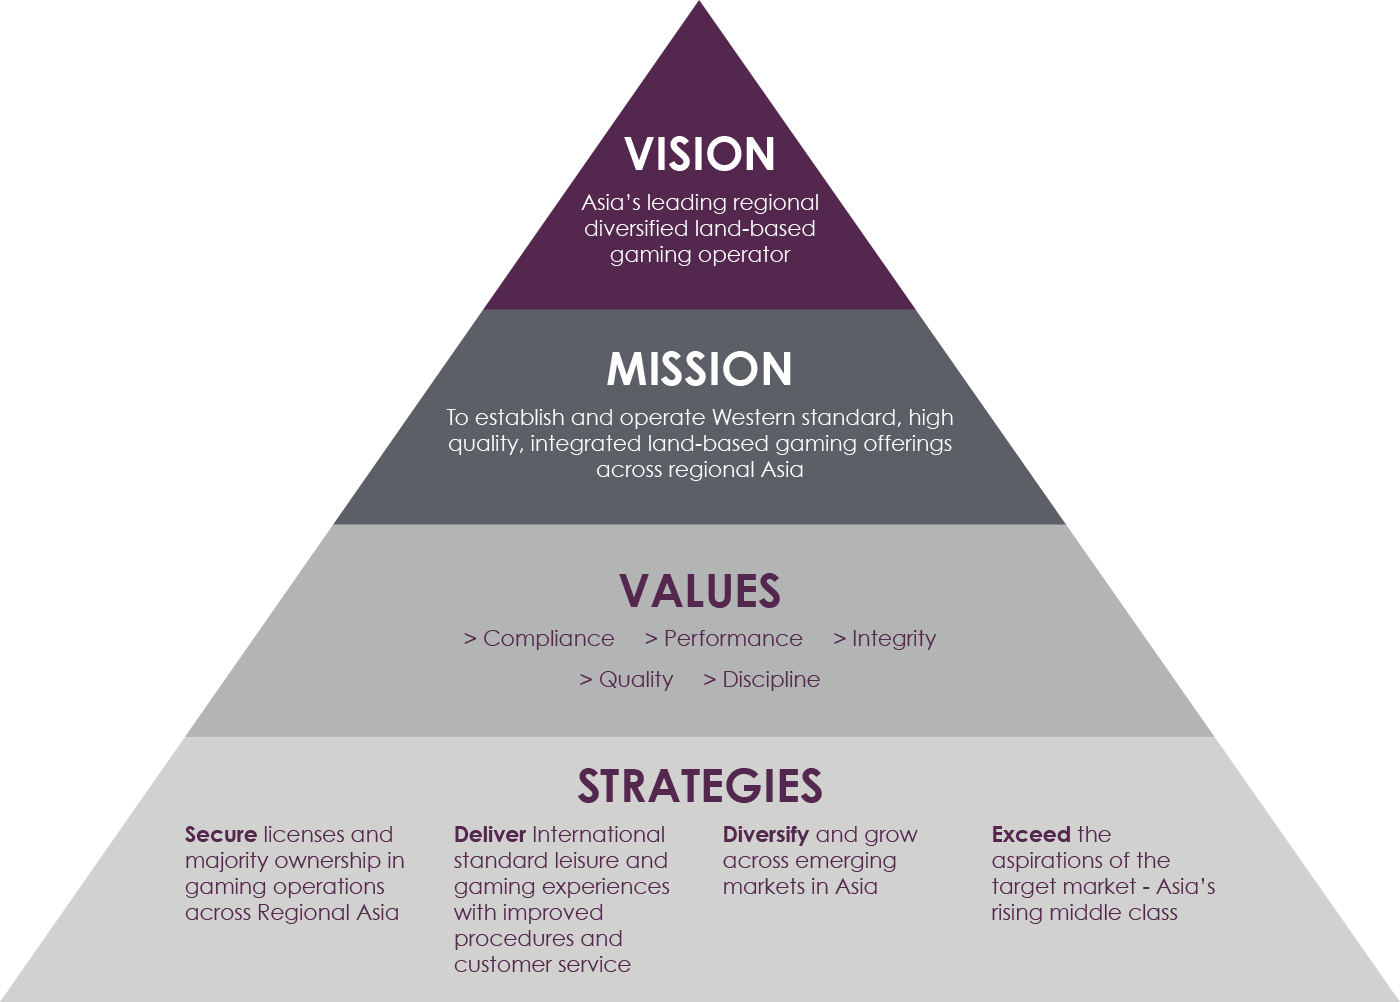 Vision, Mission, Values and Strategies Pyramid